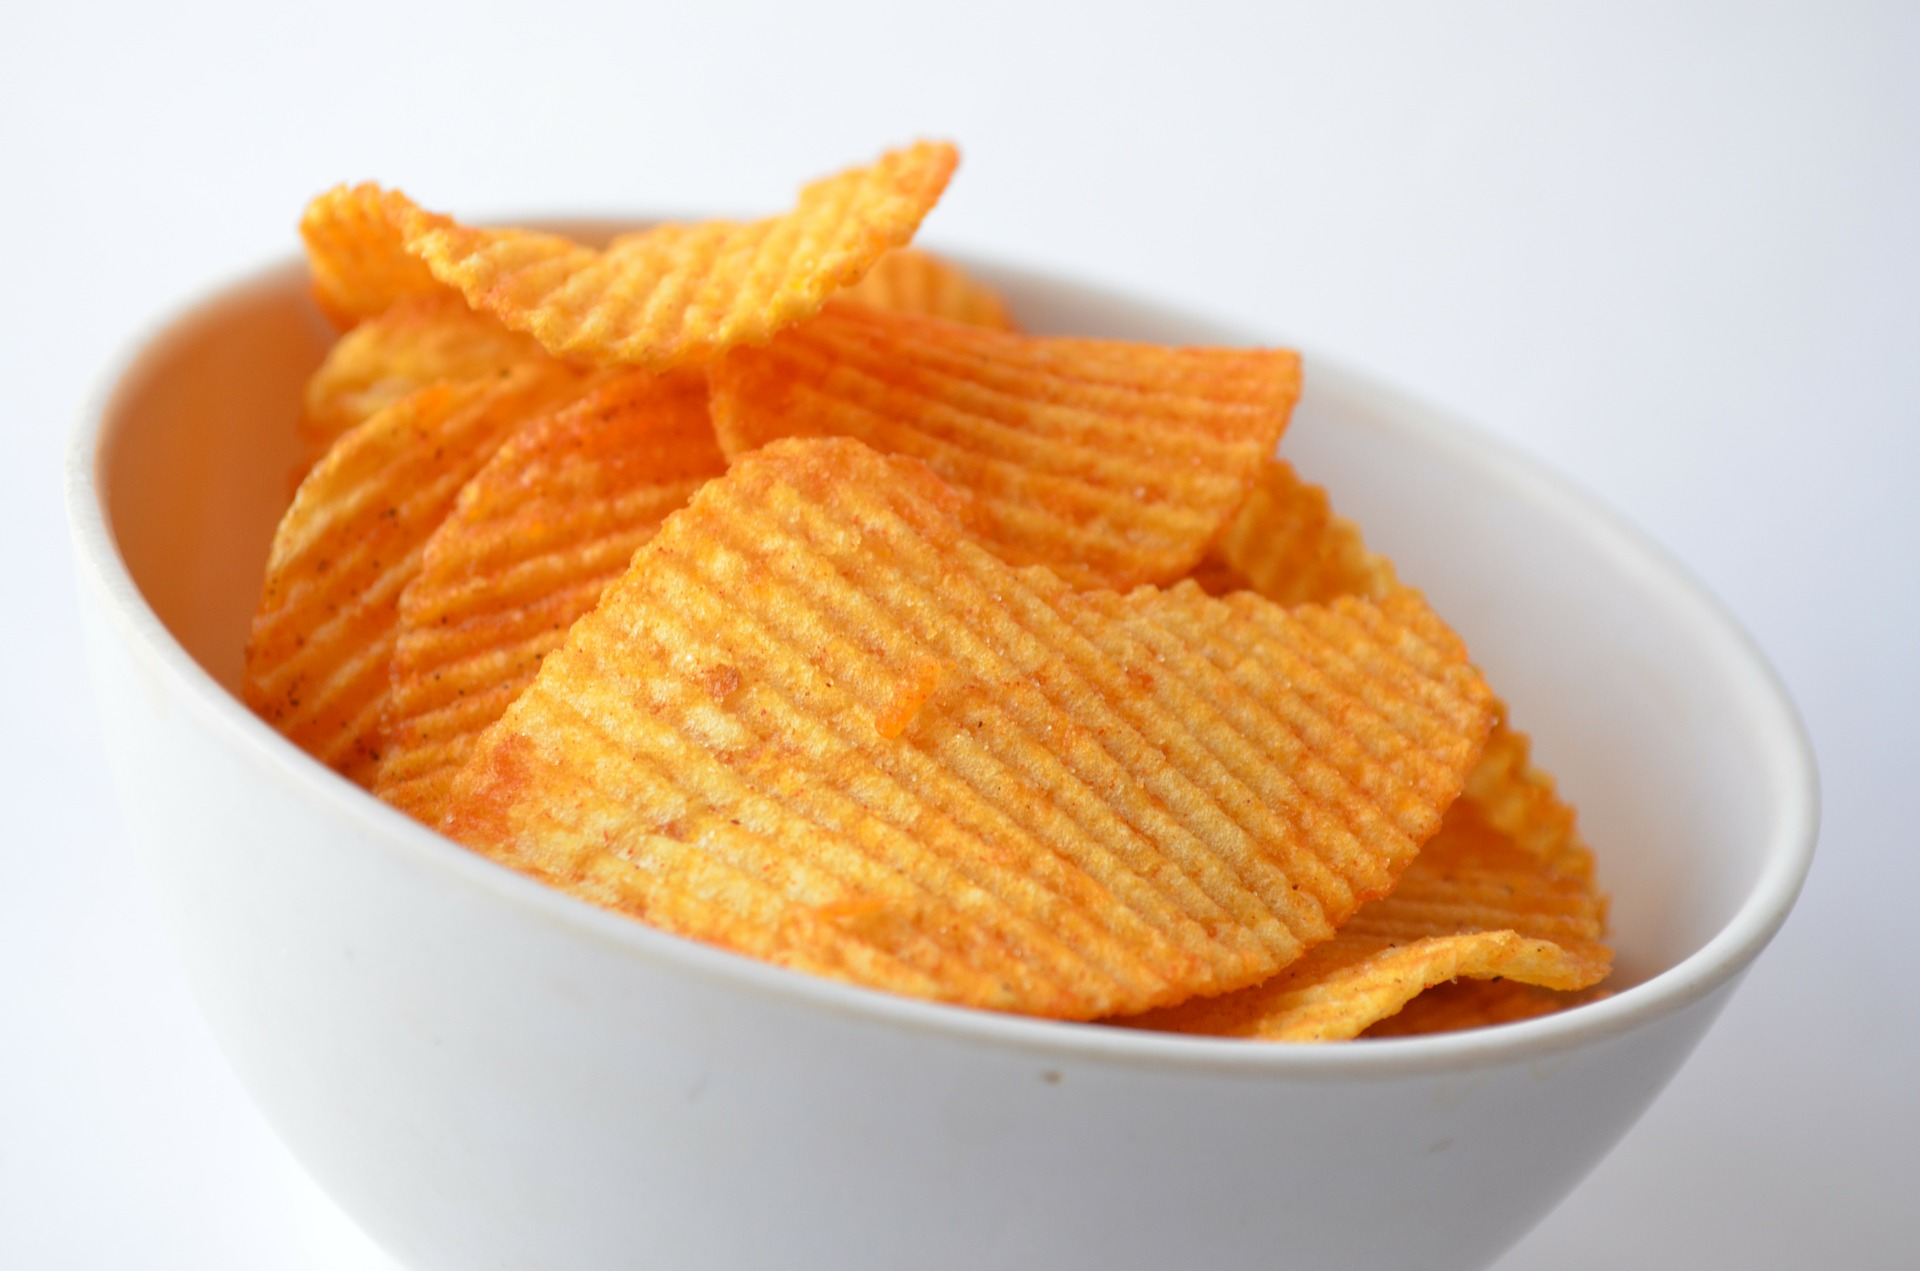 Potato chips in a small dish